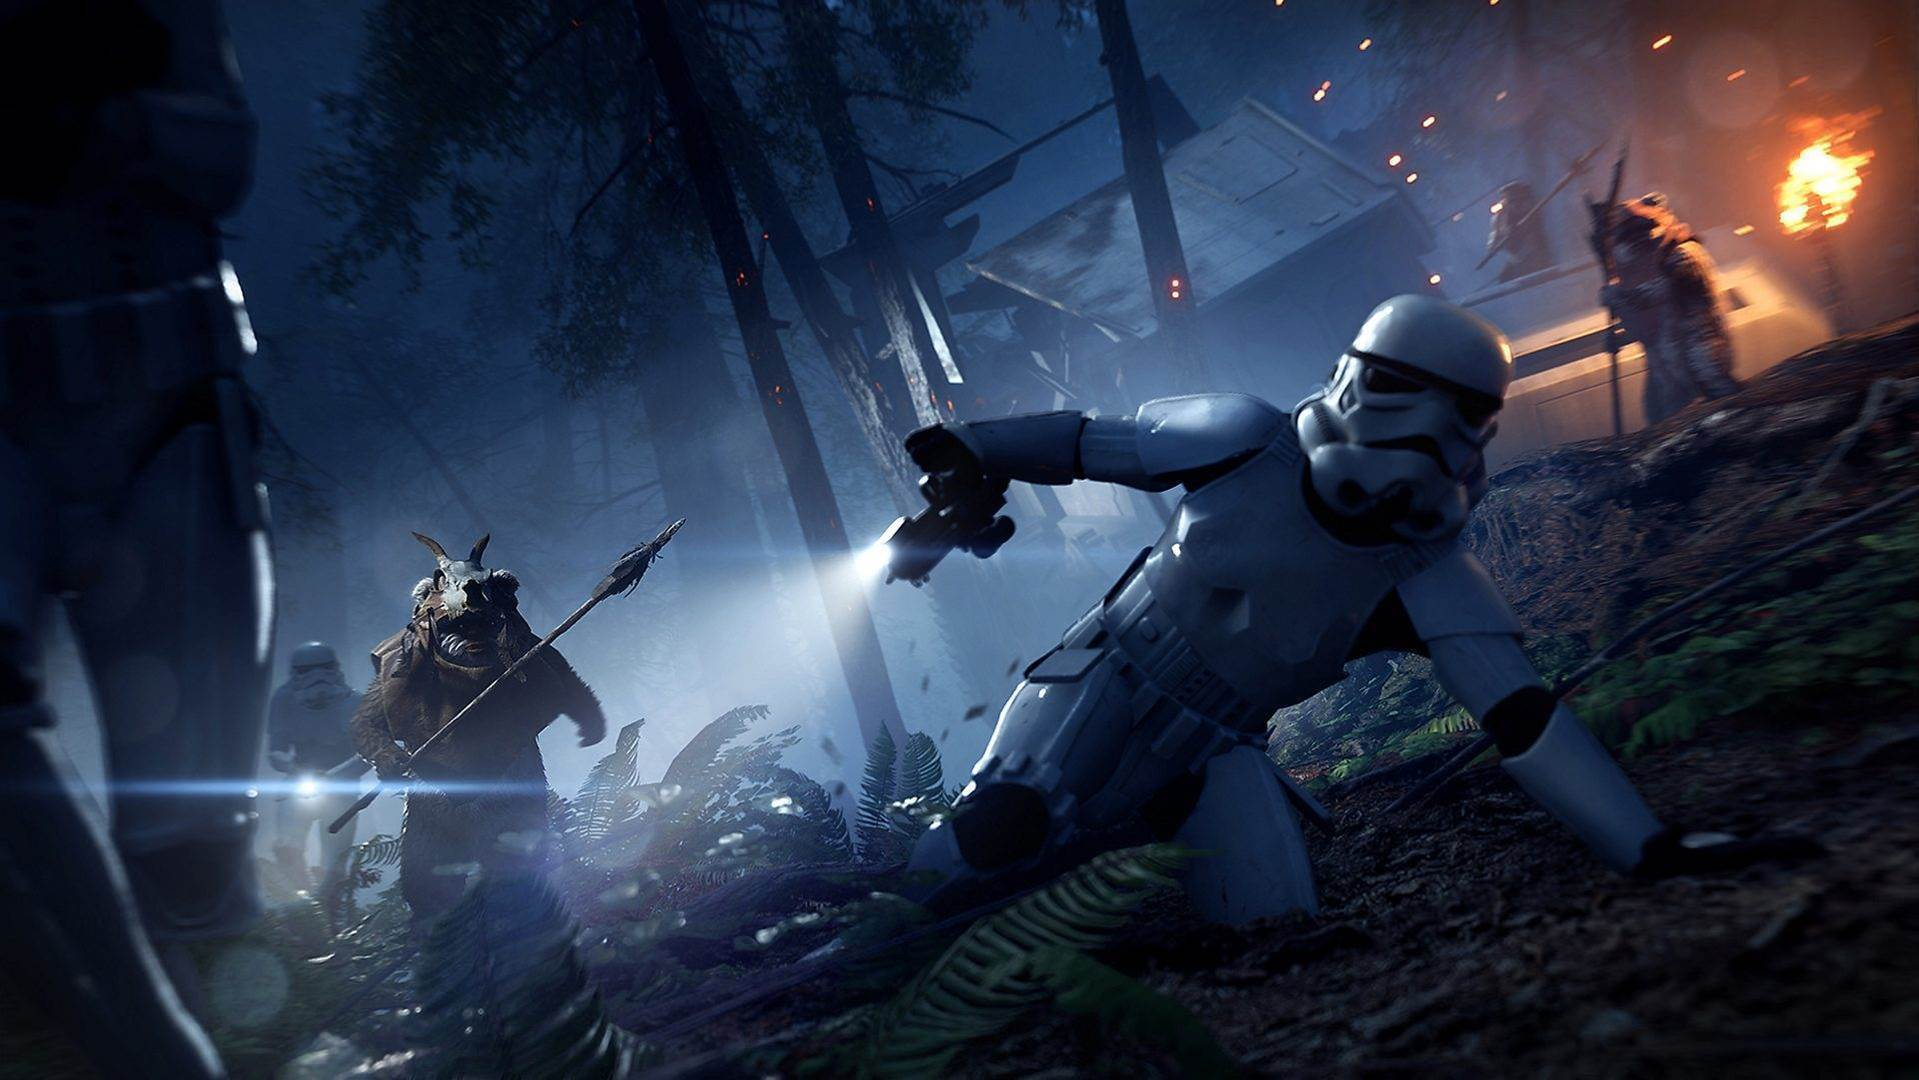 Cuddly killers: Check out Star Wars Battlefront II's Ewok Hunt mode